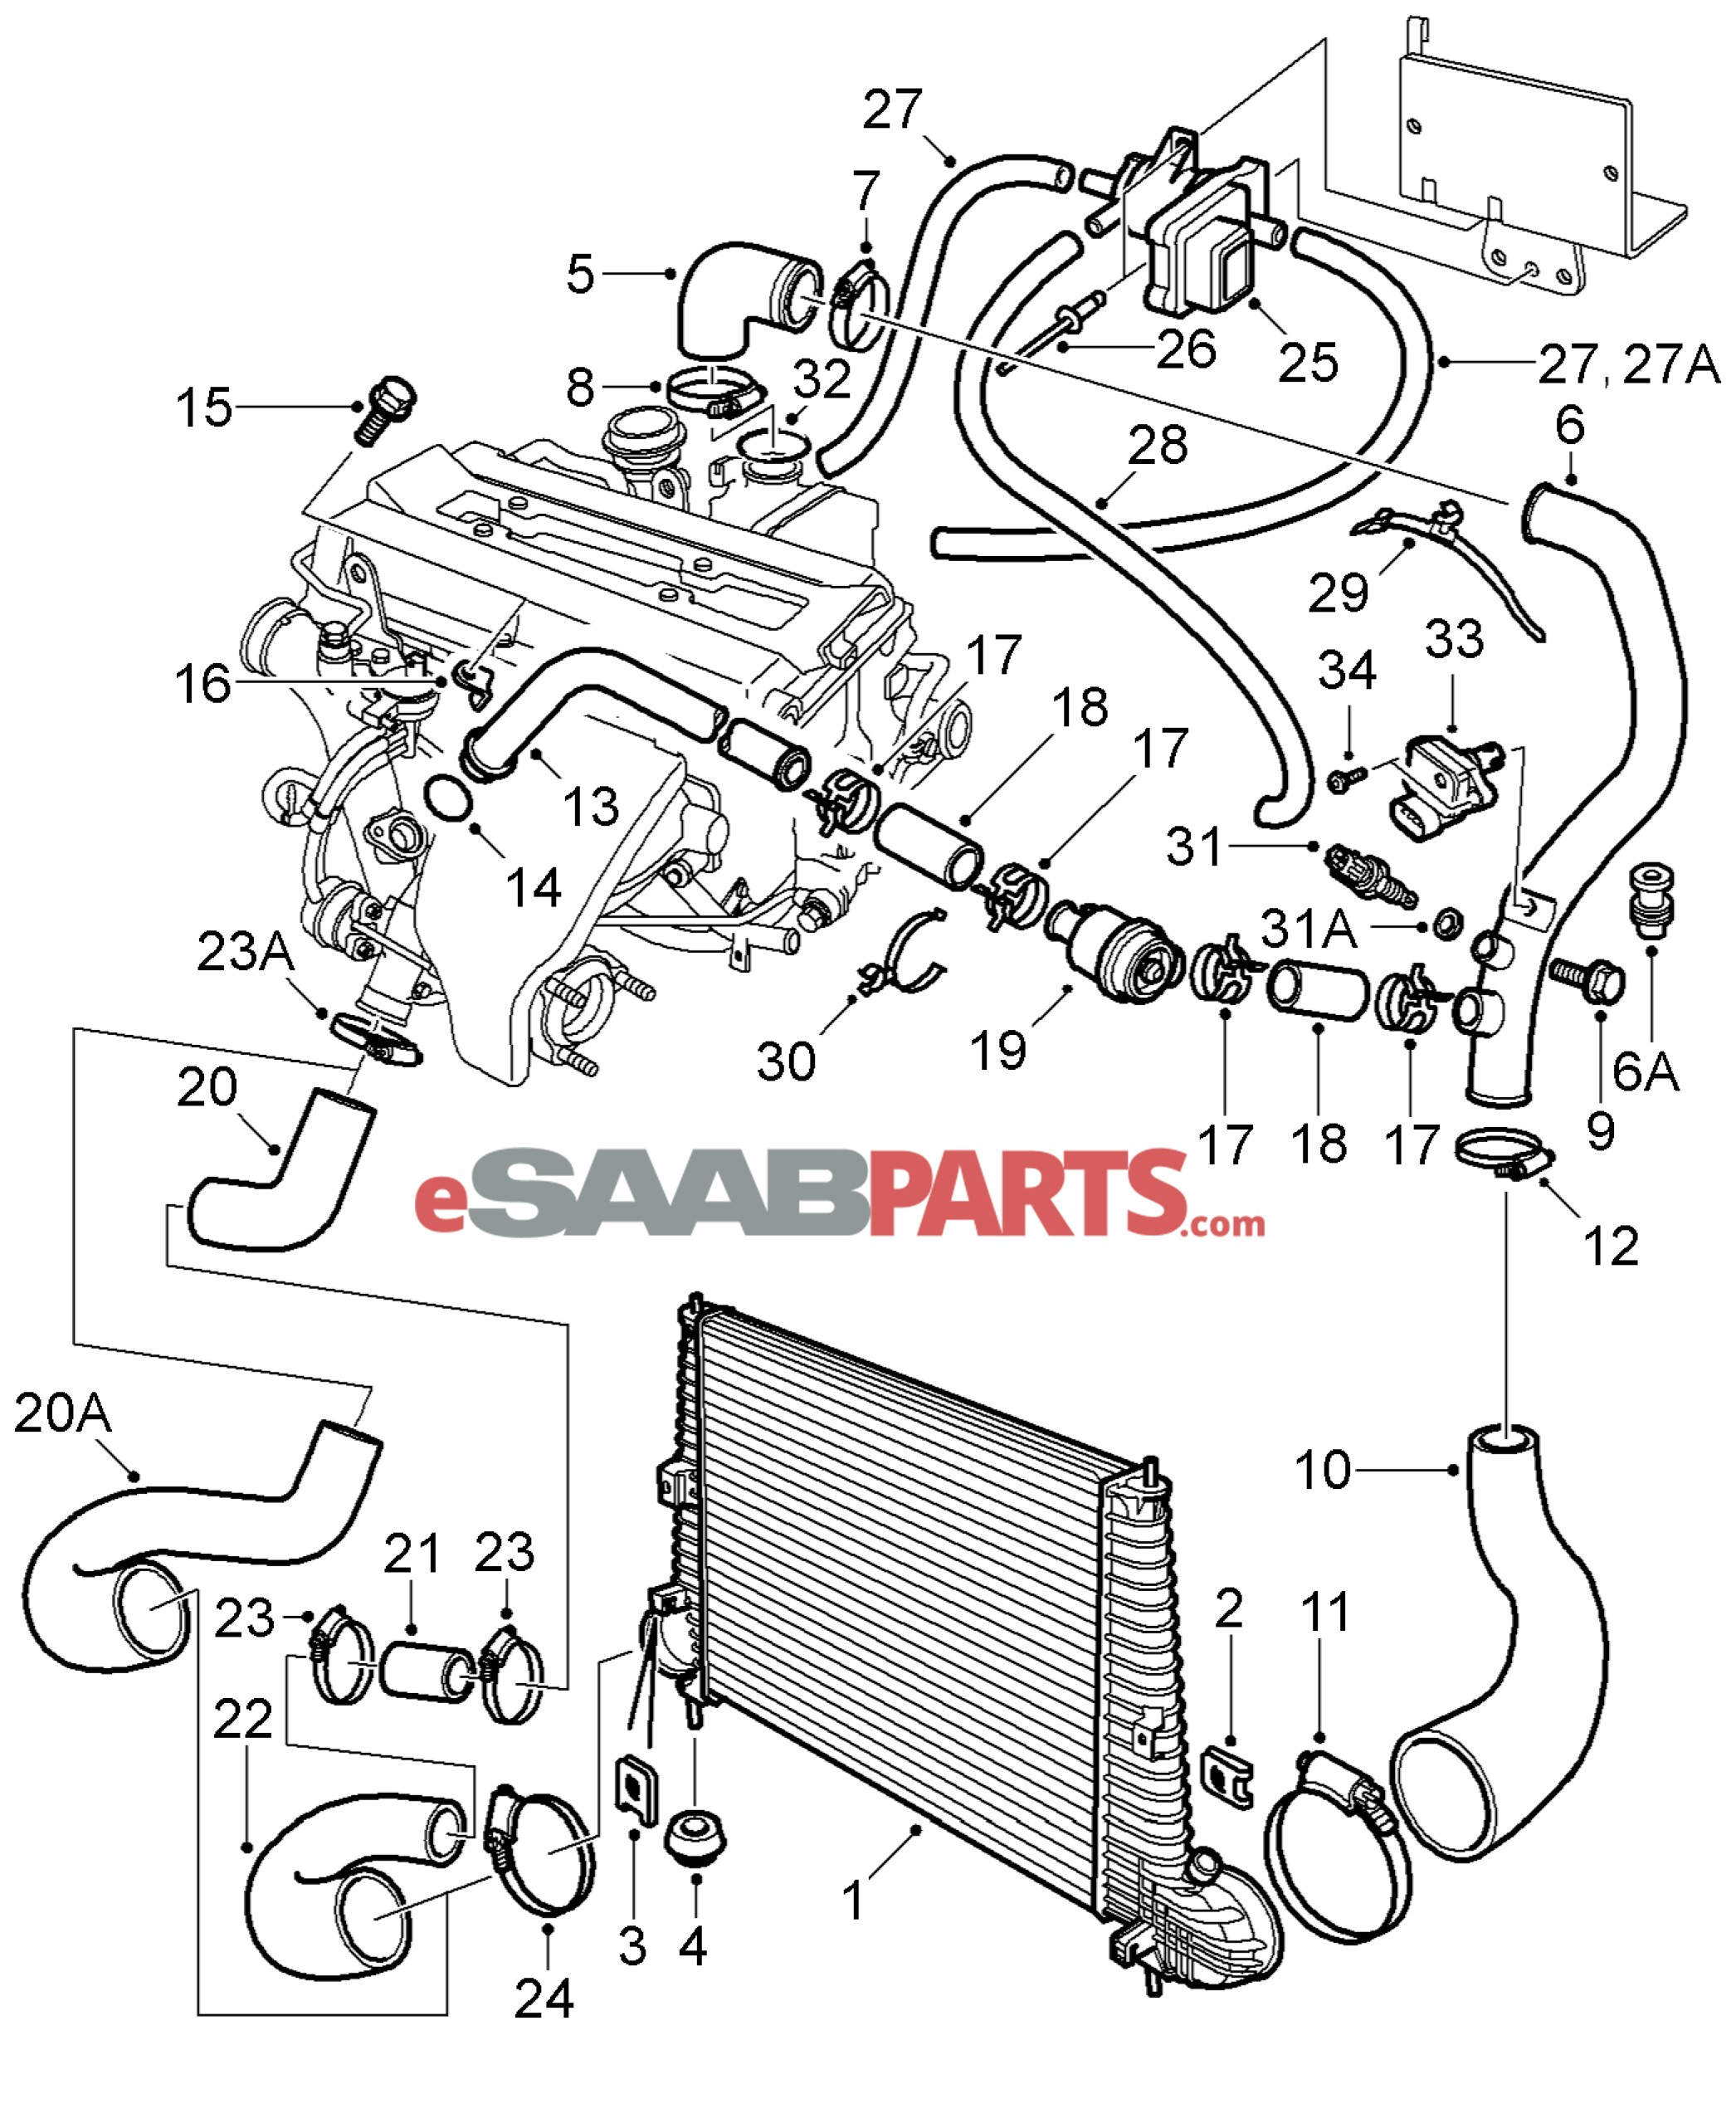 1993 Lexus Sc400 Engine Diagram 1992 Ls400 Fuel System Data Wiring Diagrams House Symbols U2022 Rh Wiringdiagramnews Today Layout 1989